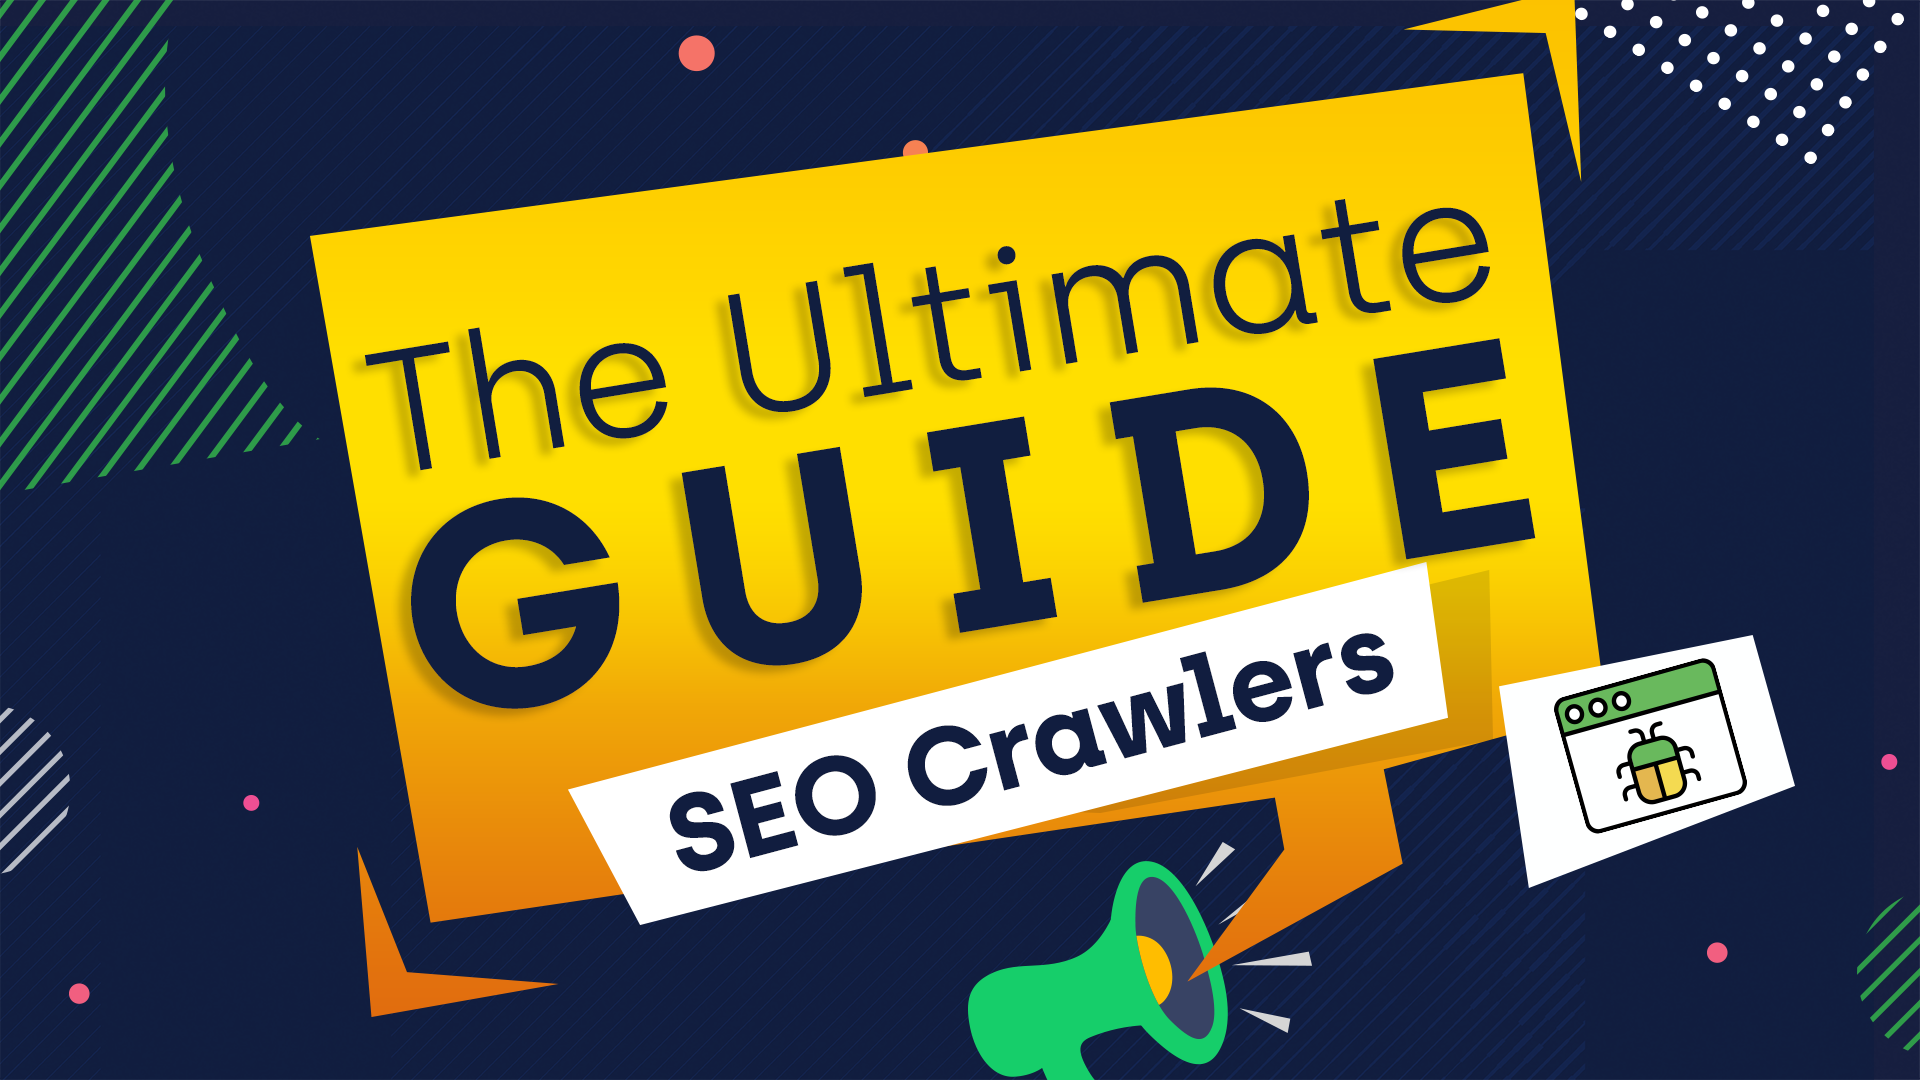 The Ultimate Guide to SEO Crawlers